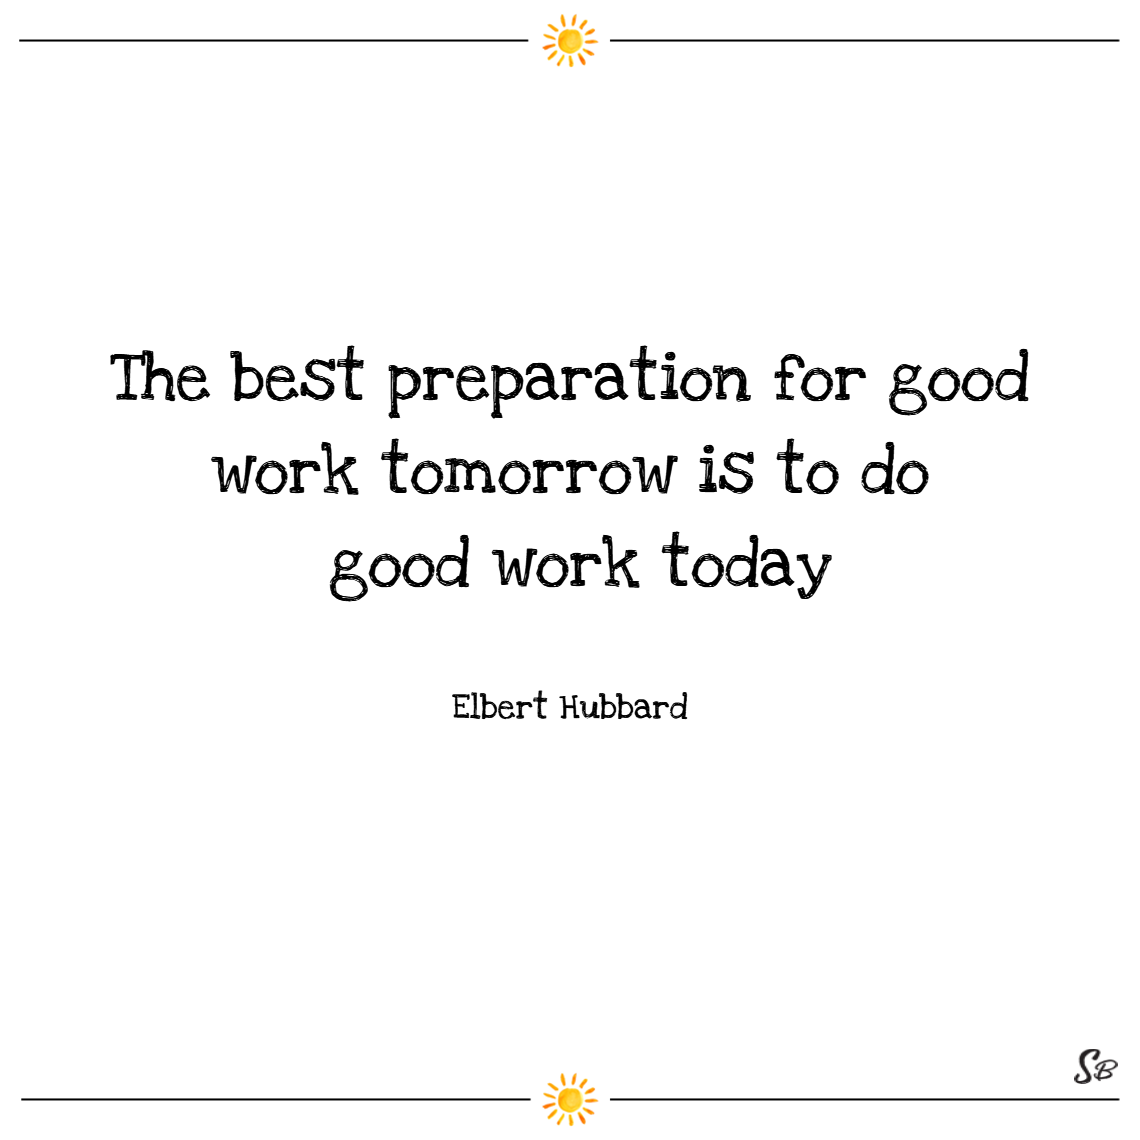 The best preparation for good work tomorrow is to do good work today. –elbert hubbard